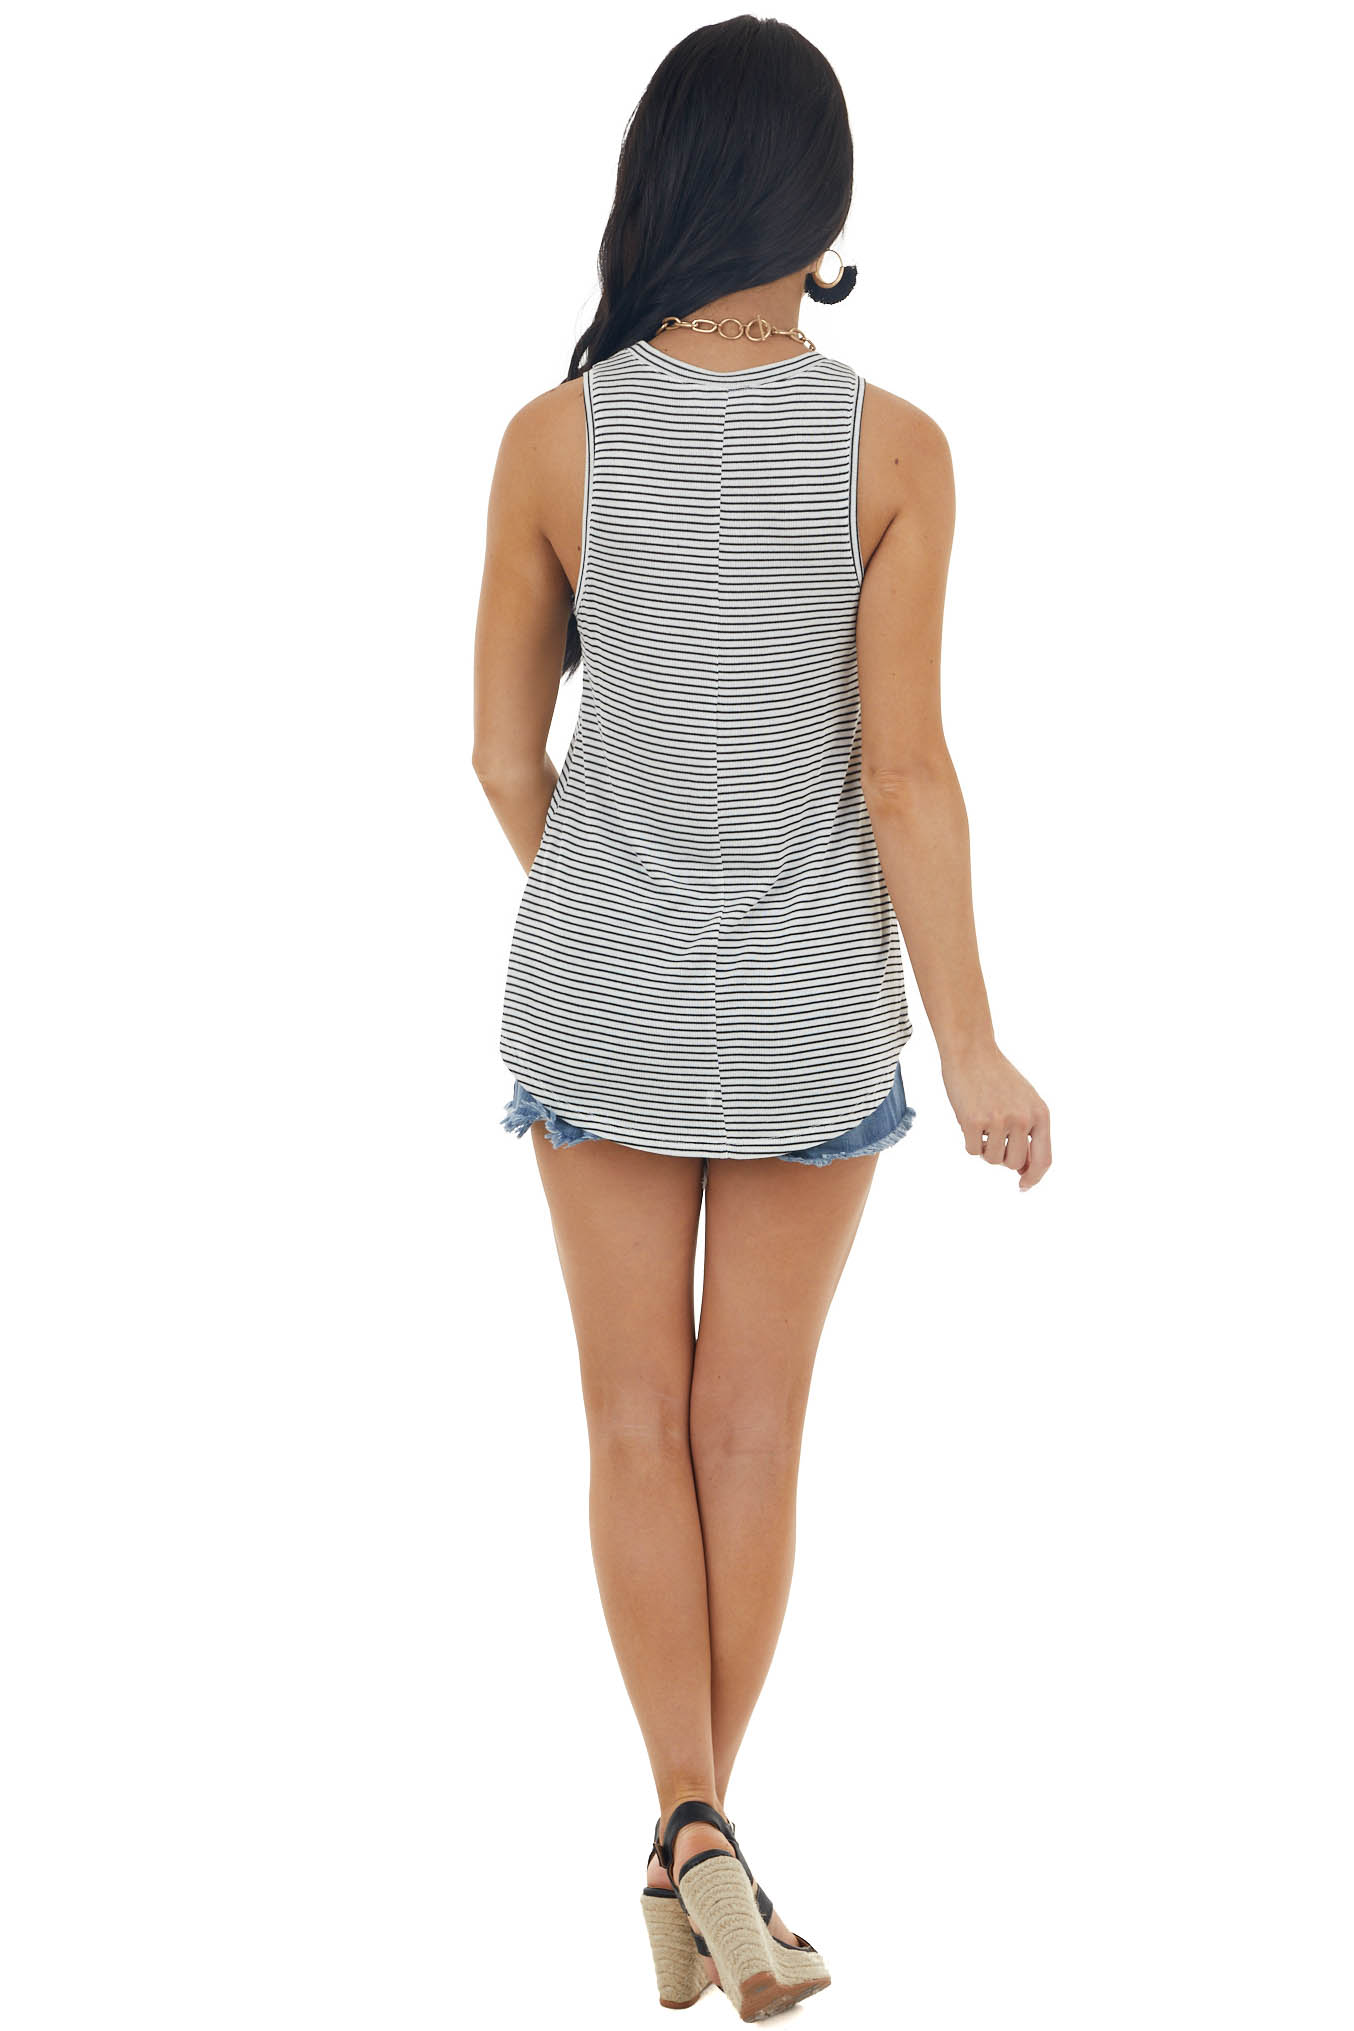 Off White and Black Striped Knit Tank Top with U Neckline